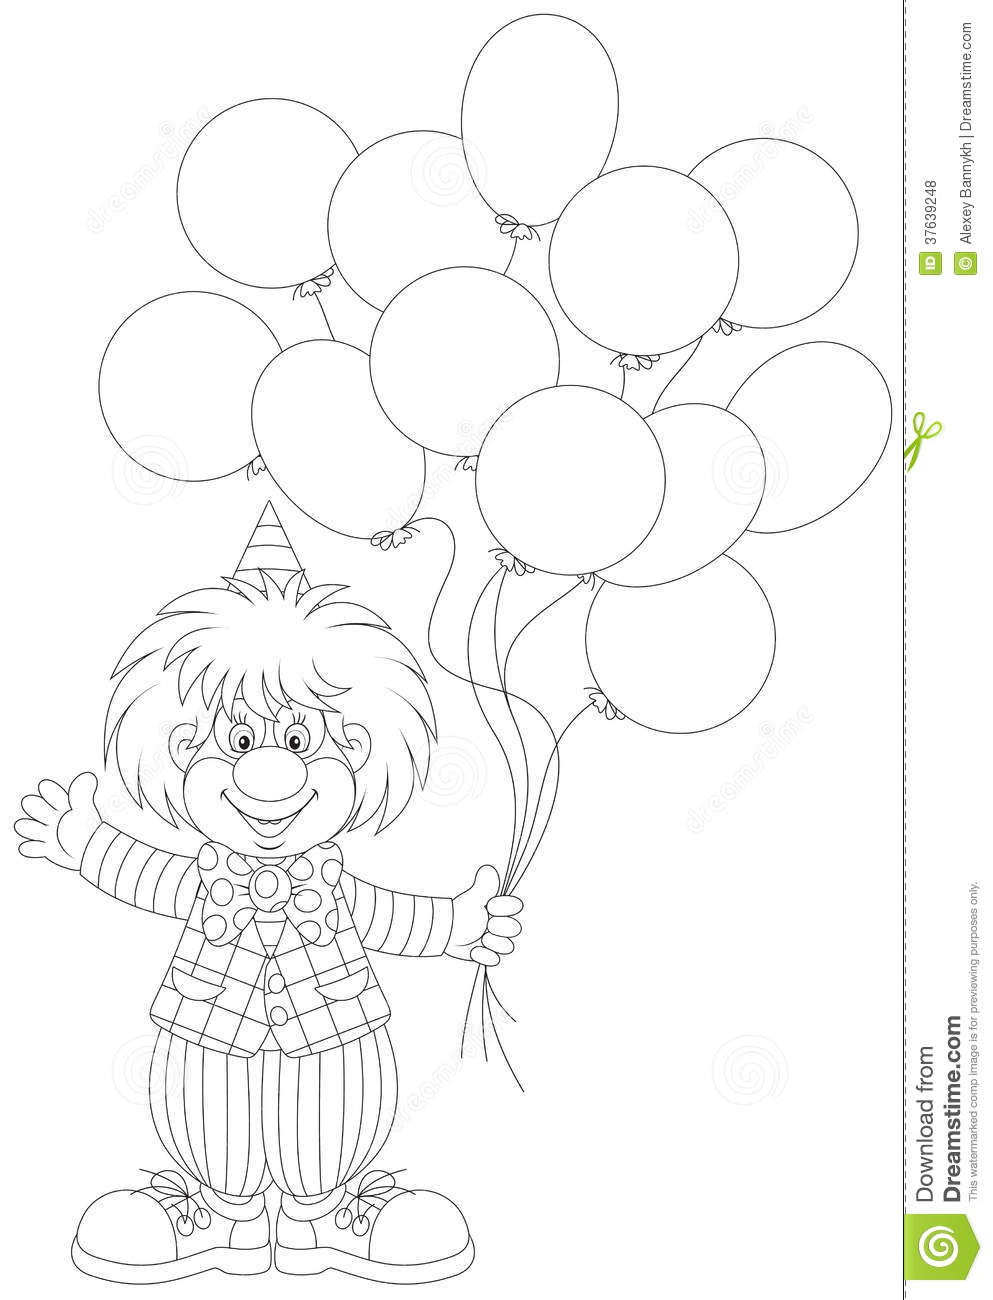 Clown with balloons coloring pages  Hellokidscom